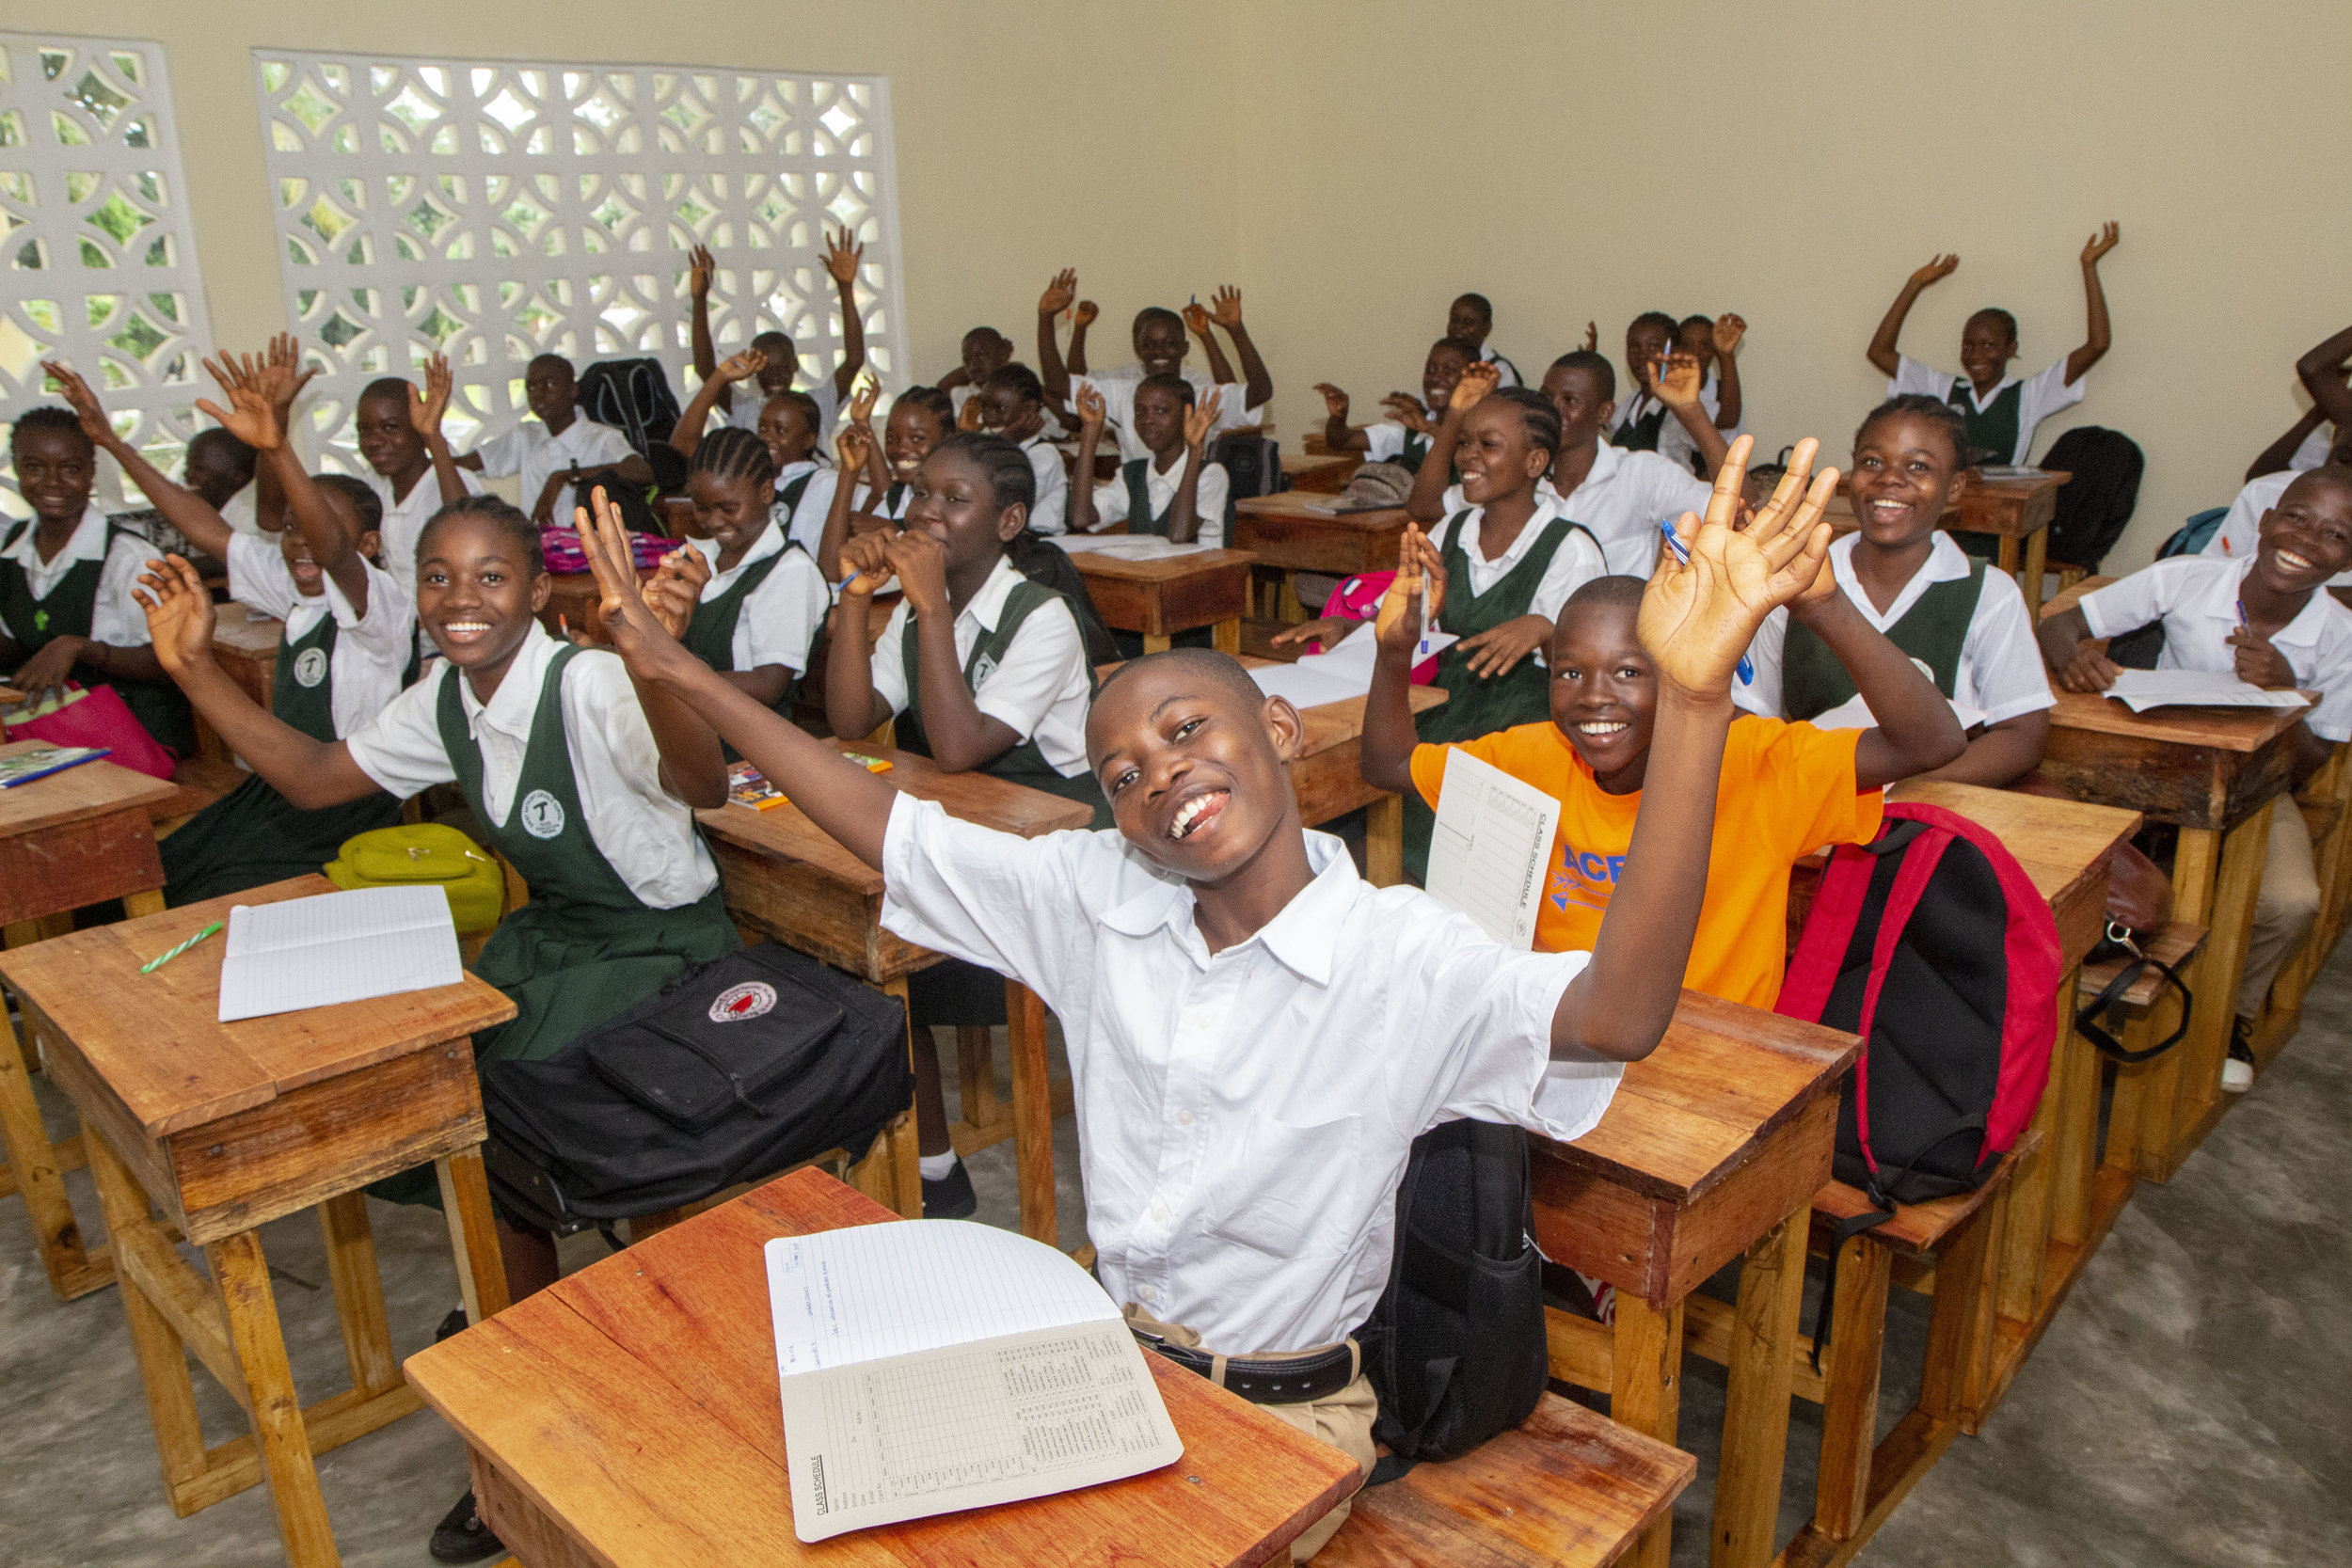 St. Anthony of Padua recently resumed classes, and the students are sooo happy with their new desks!